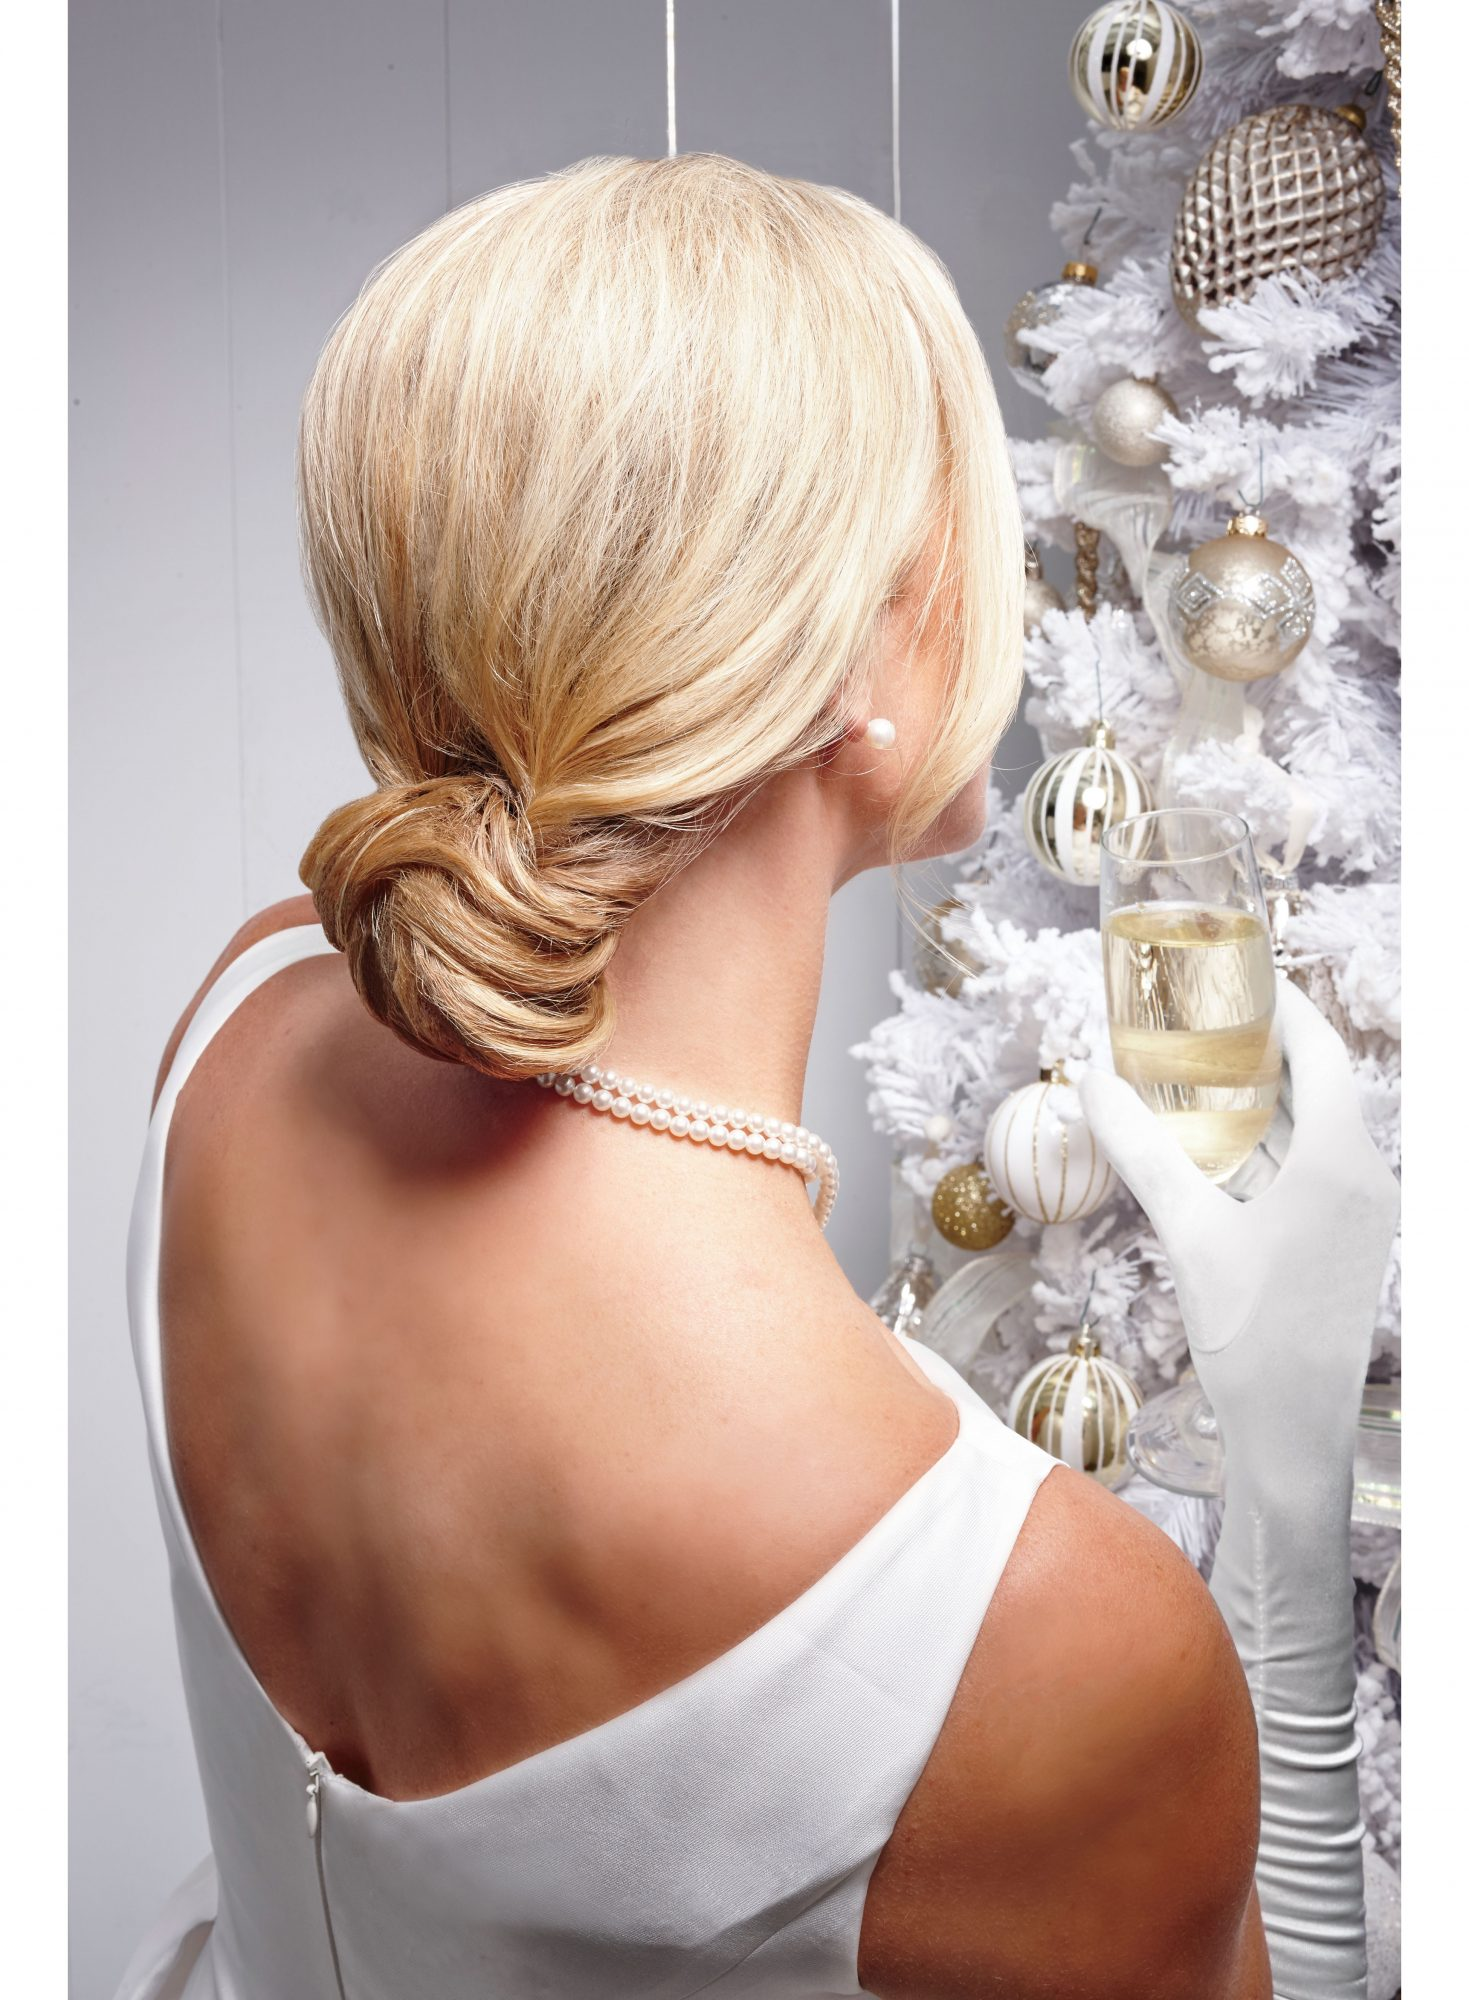 Blonde Woman with Chignon Updo